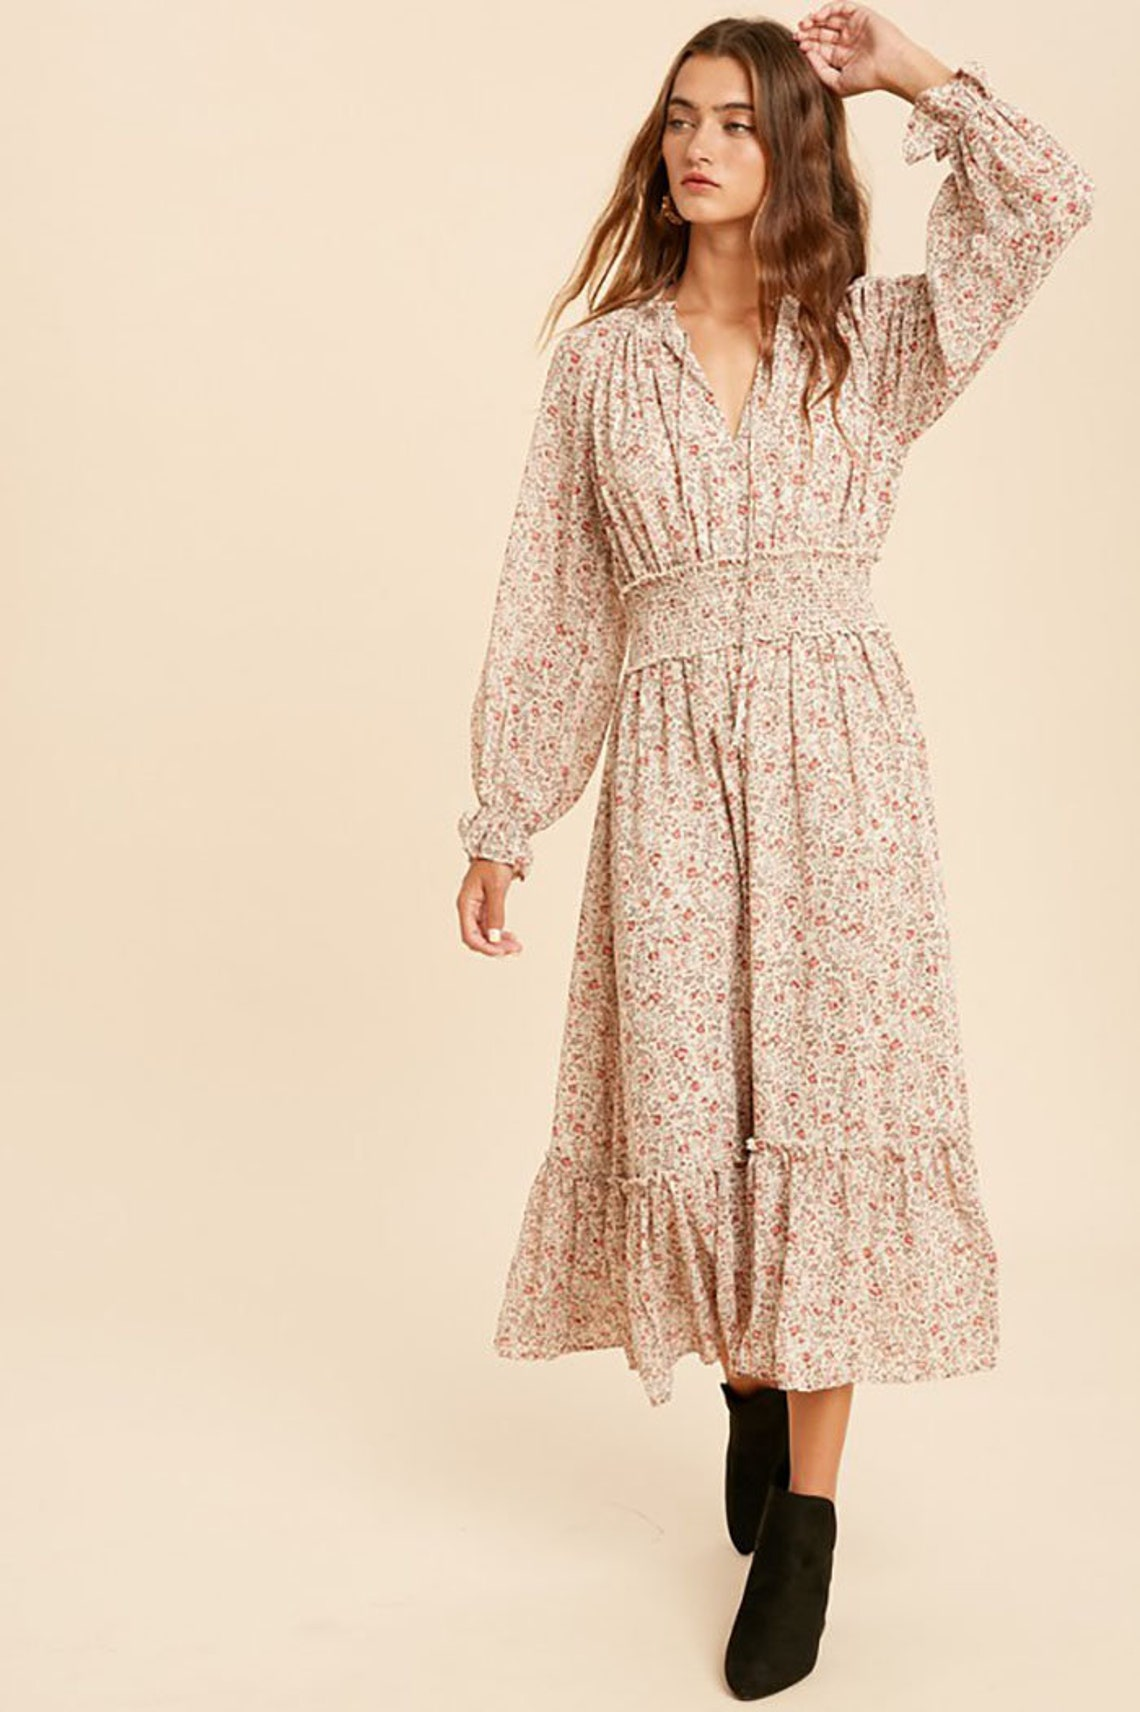 Women's Boho Bohemian Lace Floral Smocked Midi Dress